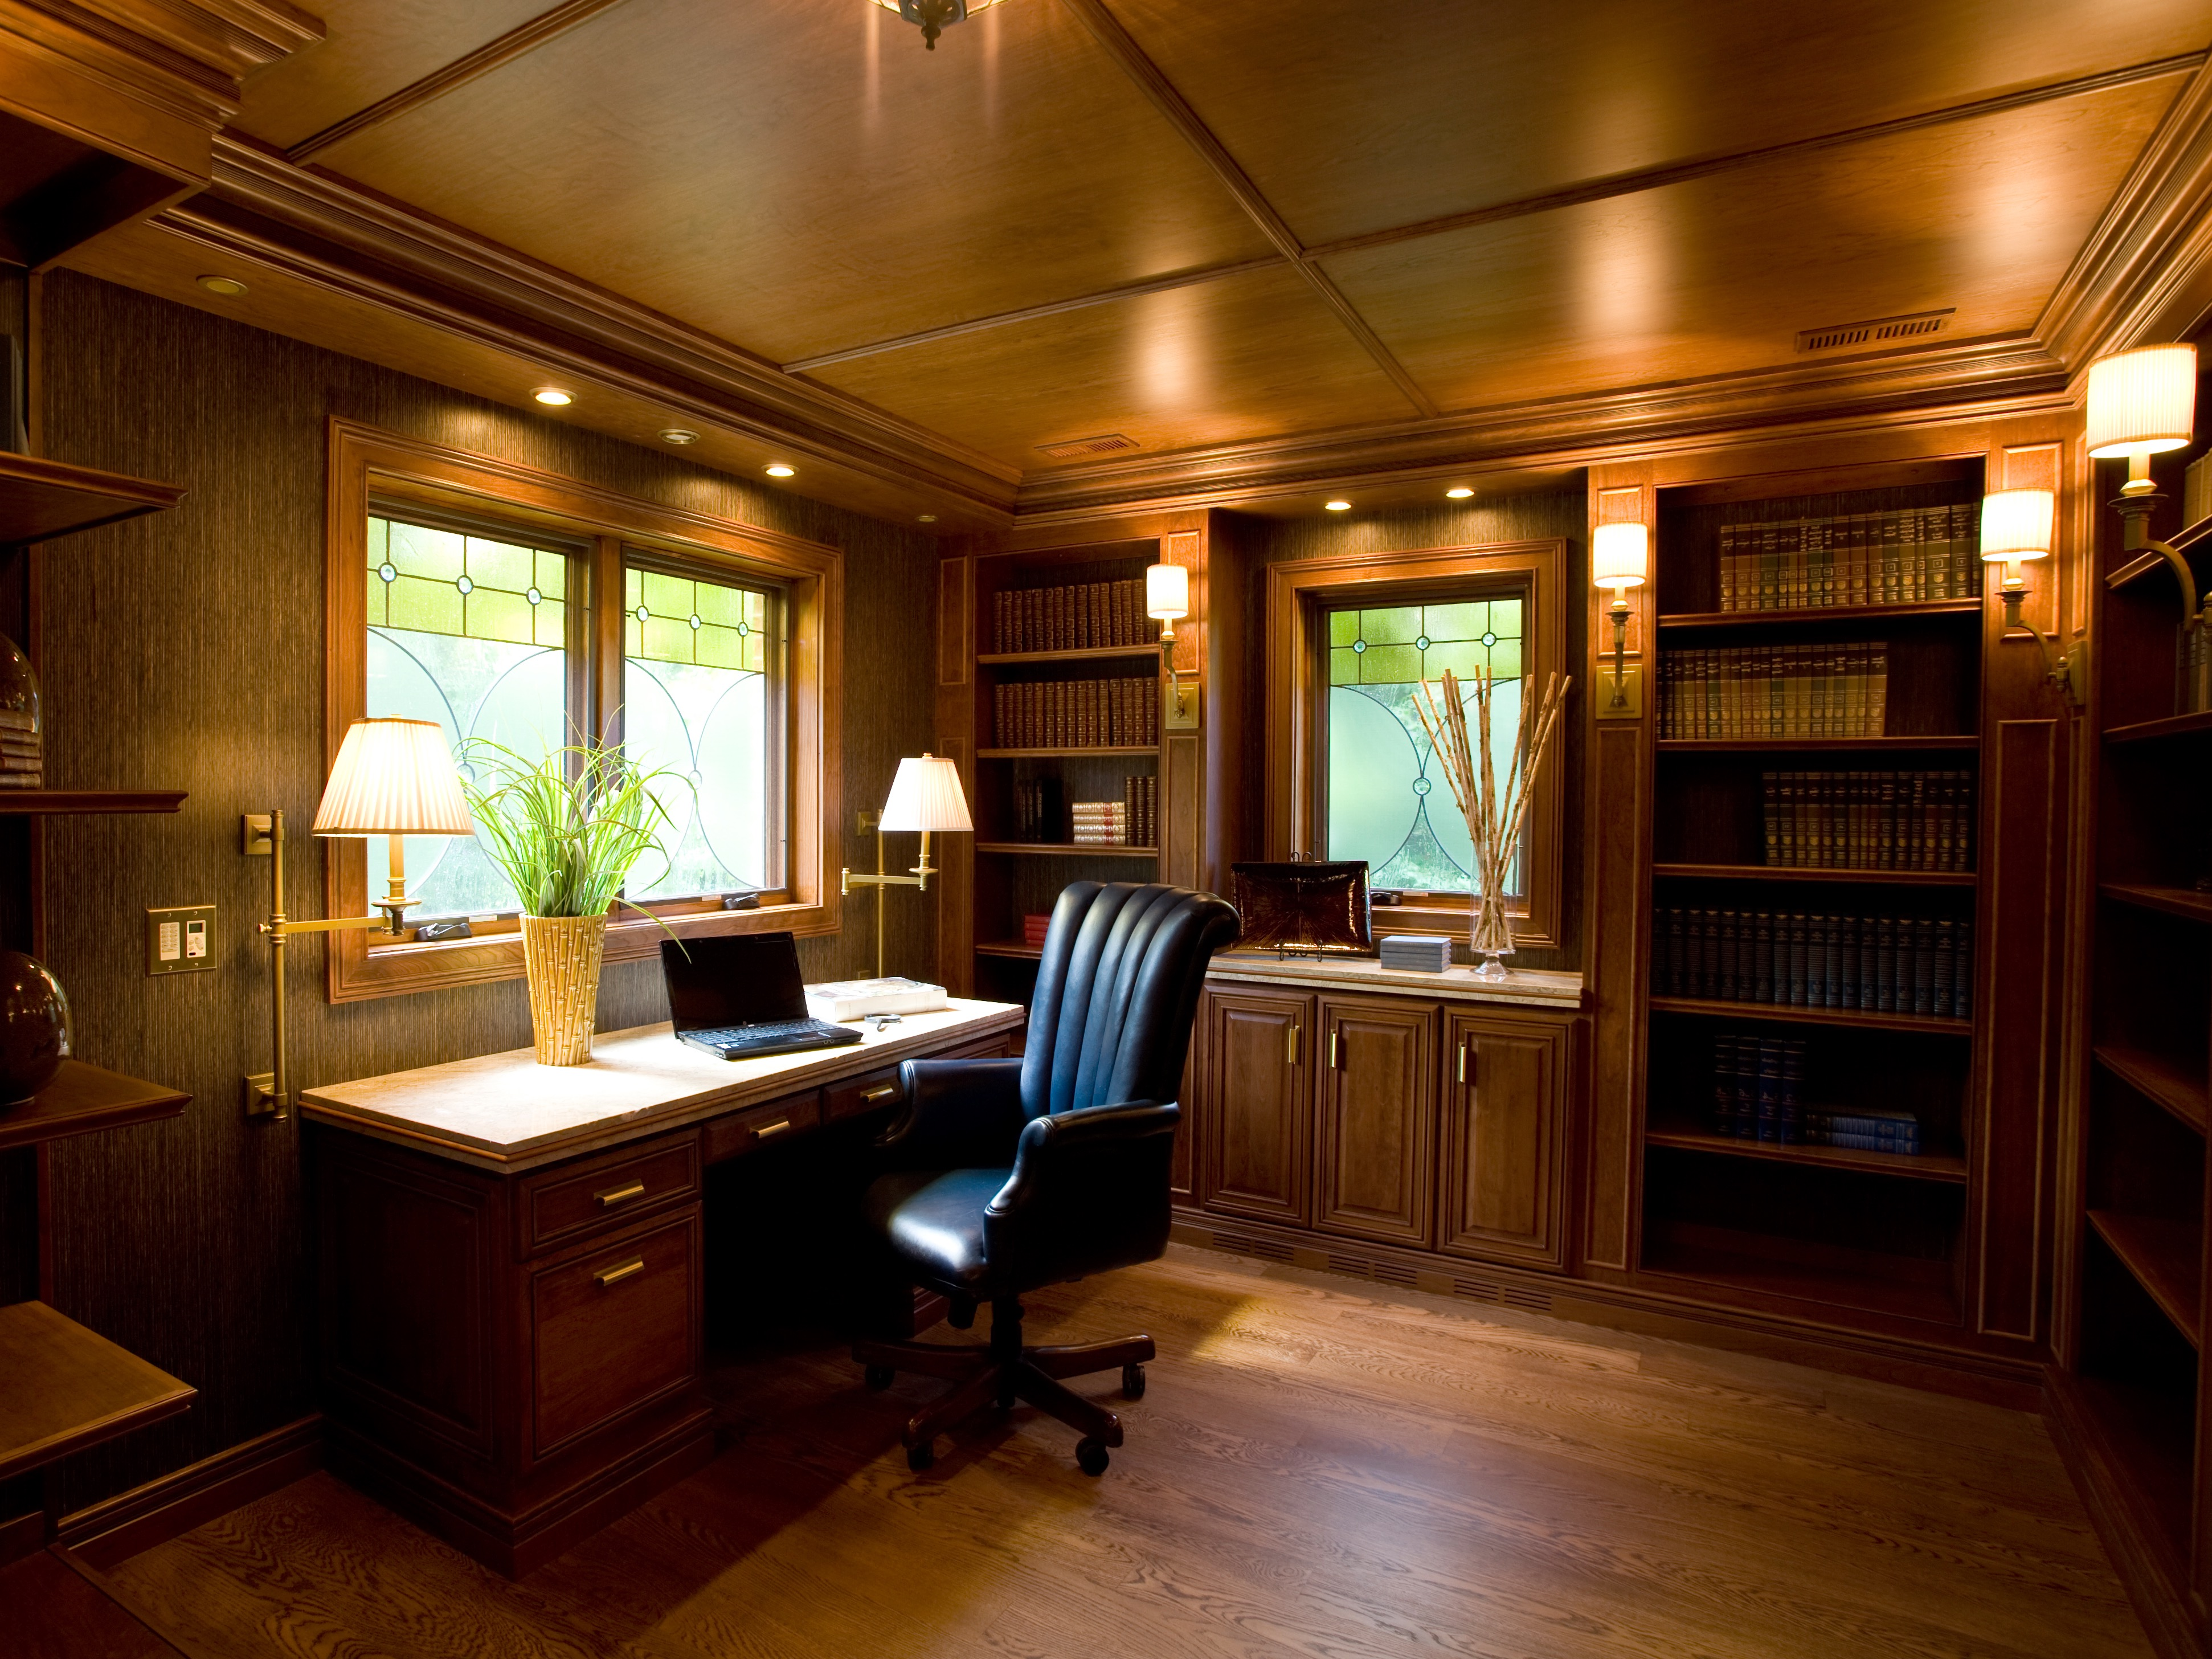 50 Home Office And Workspace Interior Design Ideas 17295